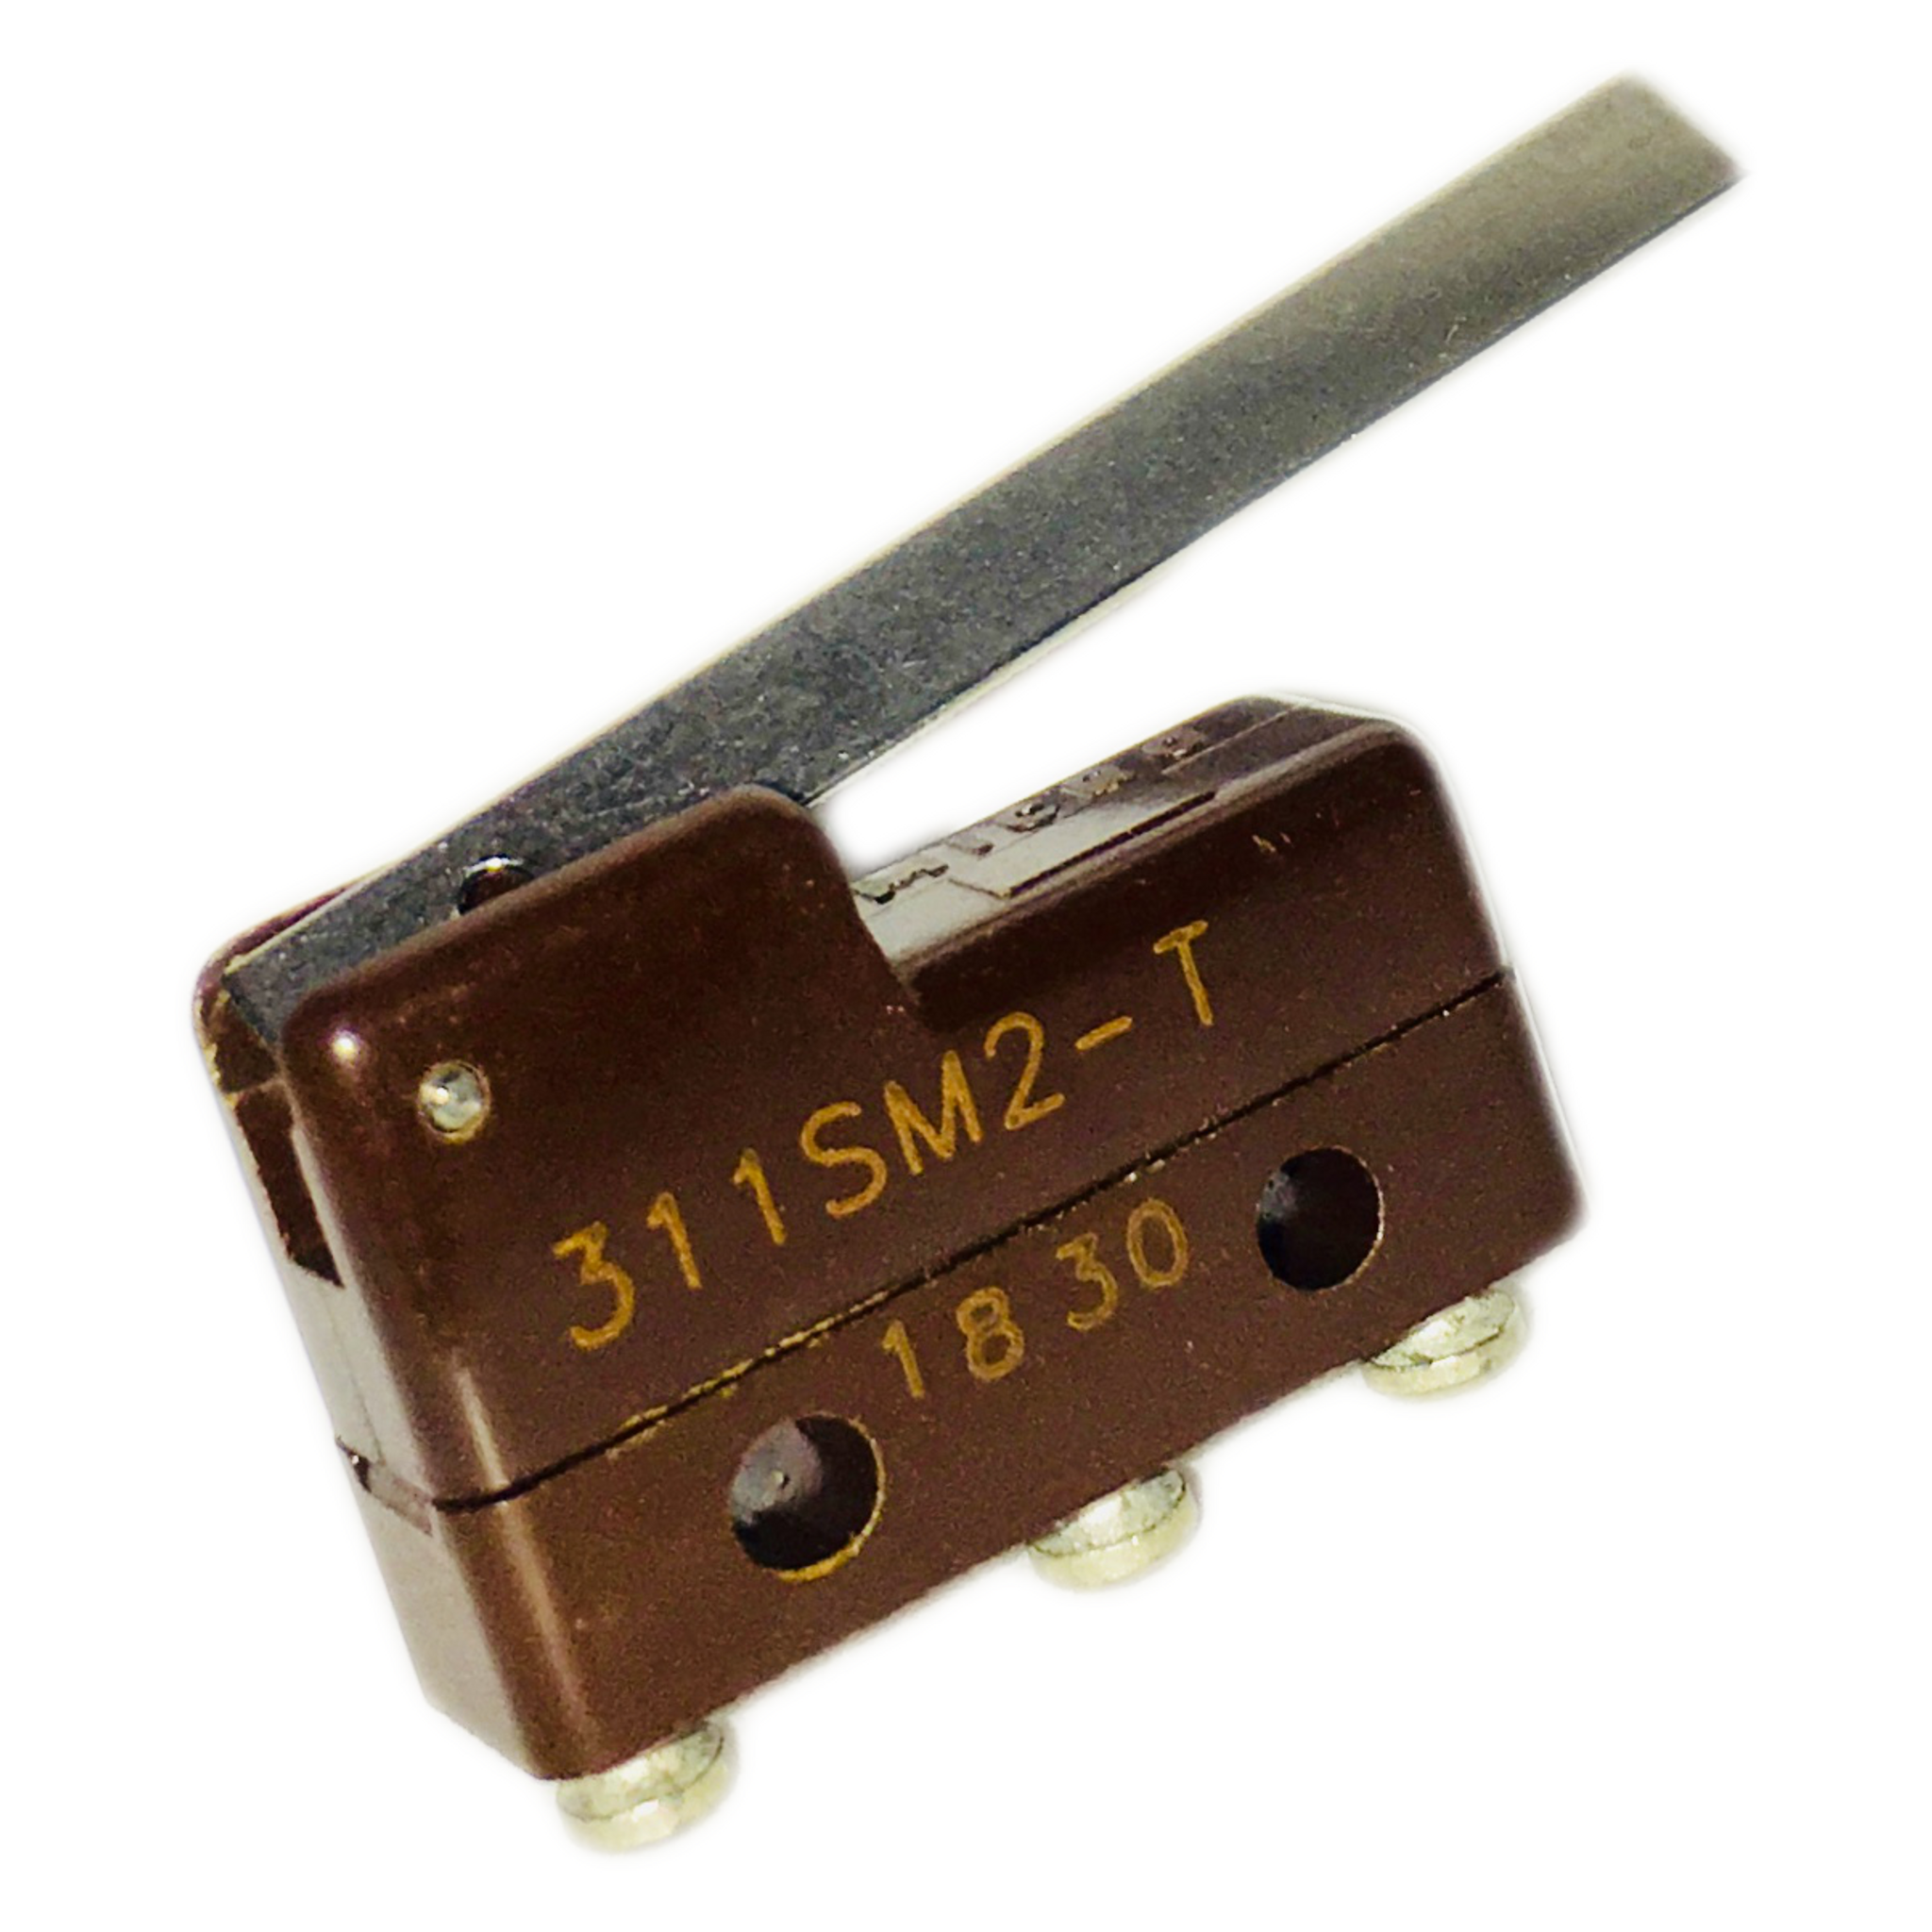 311SM2-T Snap Action Switches 5A .565 Lever